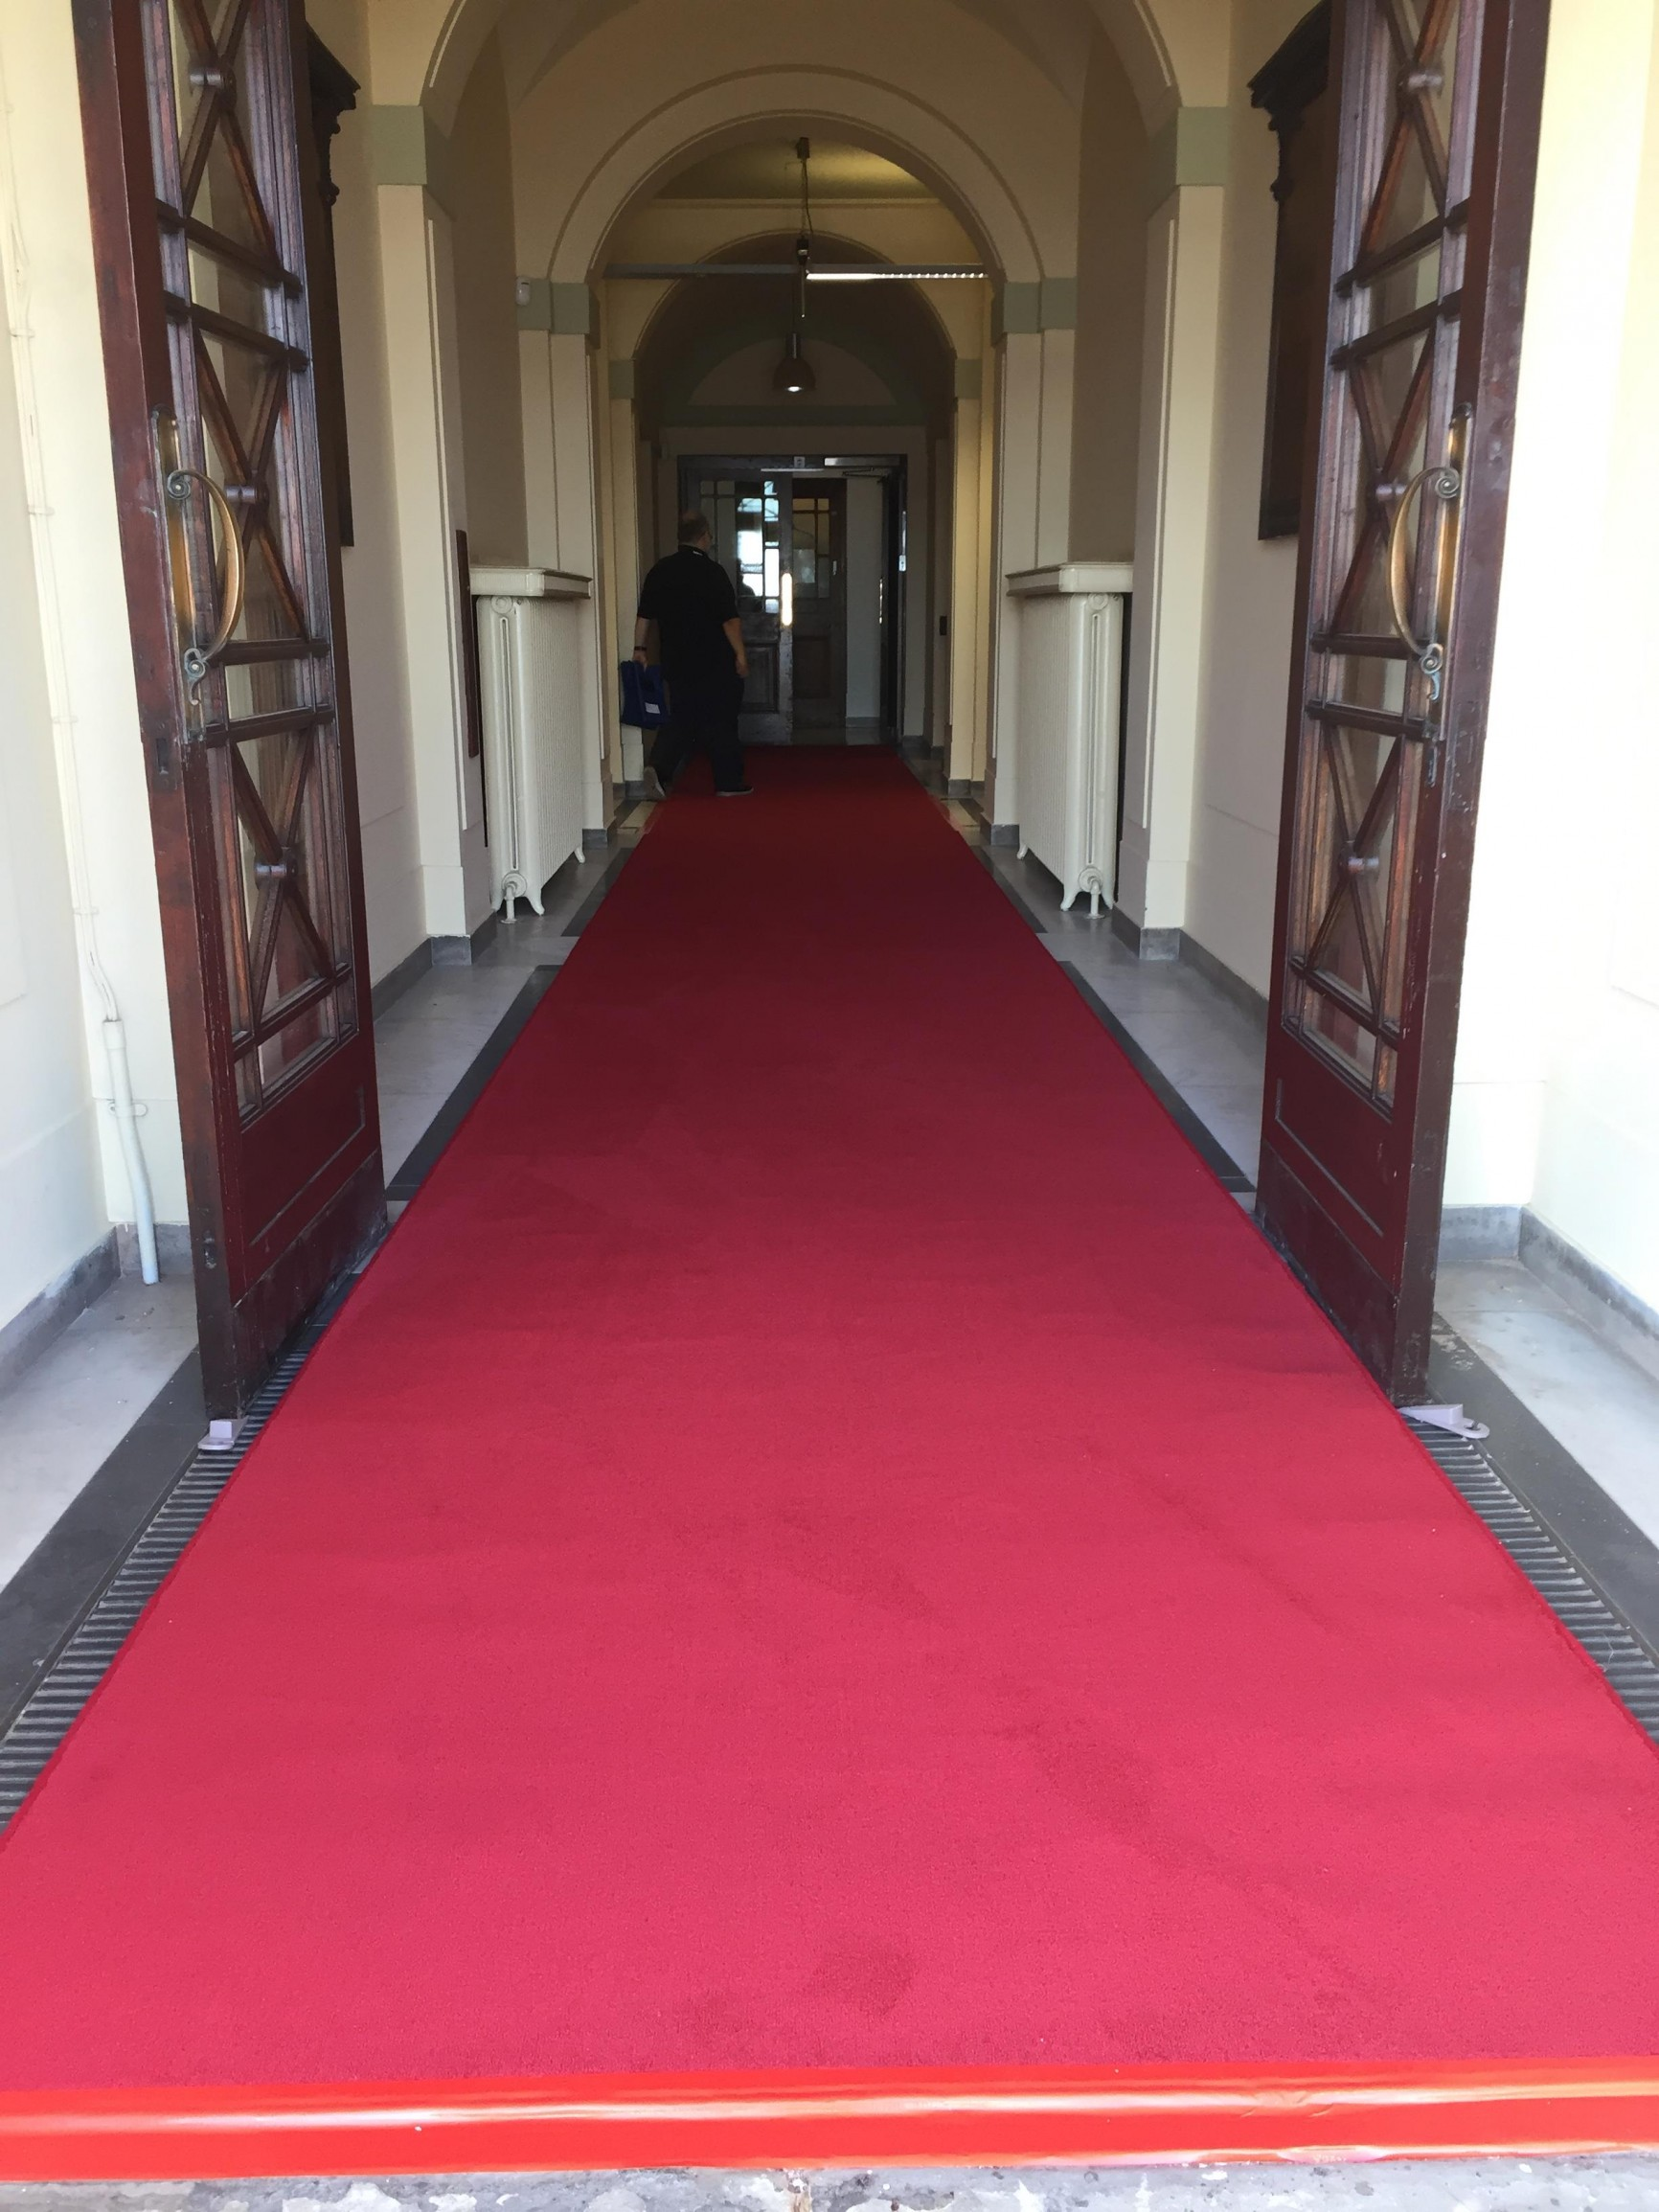 Red carpet at Wallasey Town Hall in Wirral